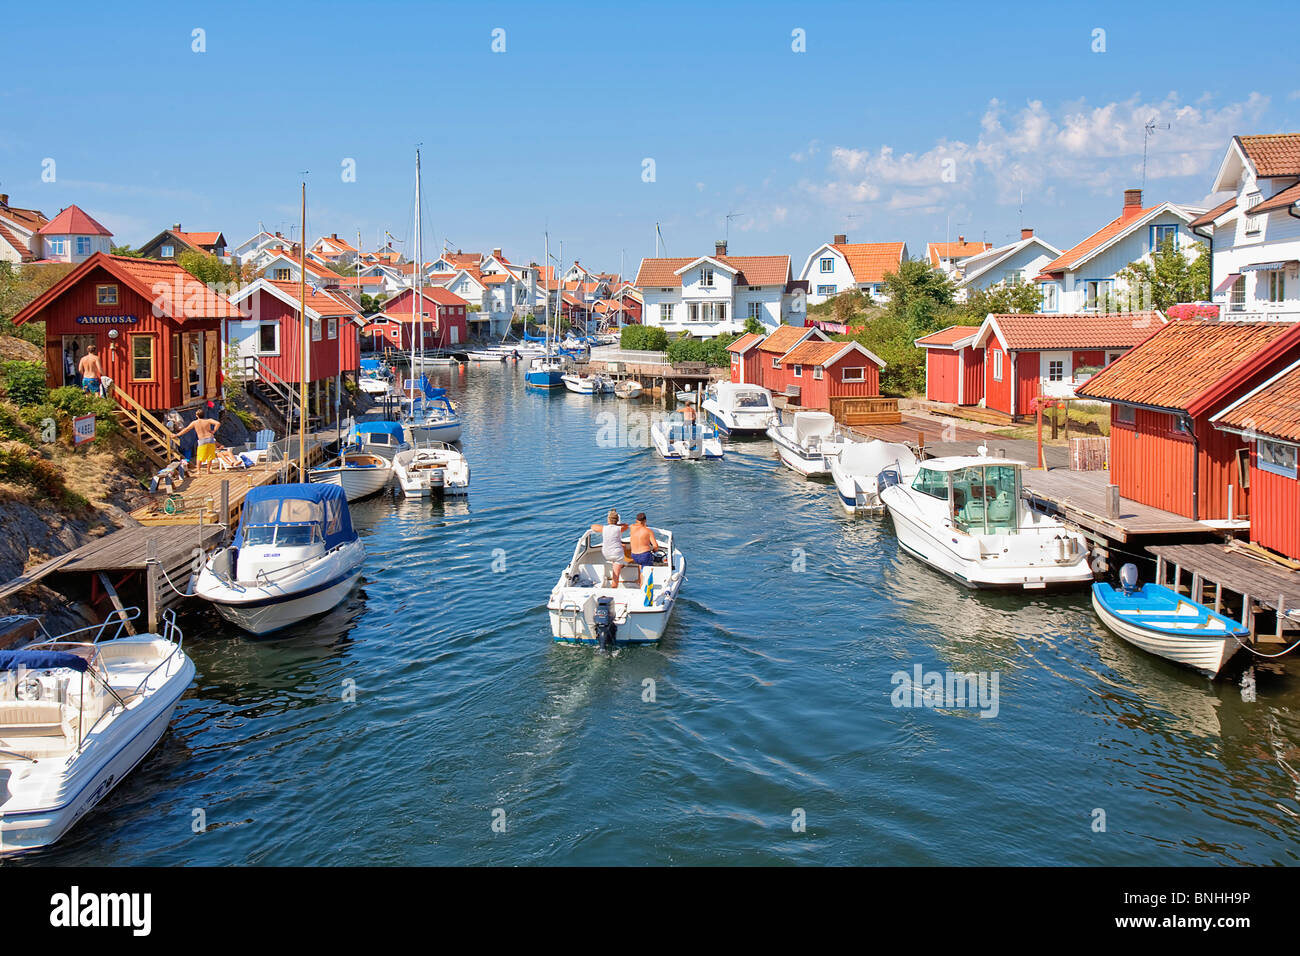 Sweden Grundsund Bohuslän West Coast Archipelago Boat Boats Building Buildings Coastal Town Day Daytime Europe - Stock Image